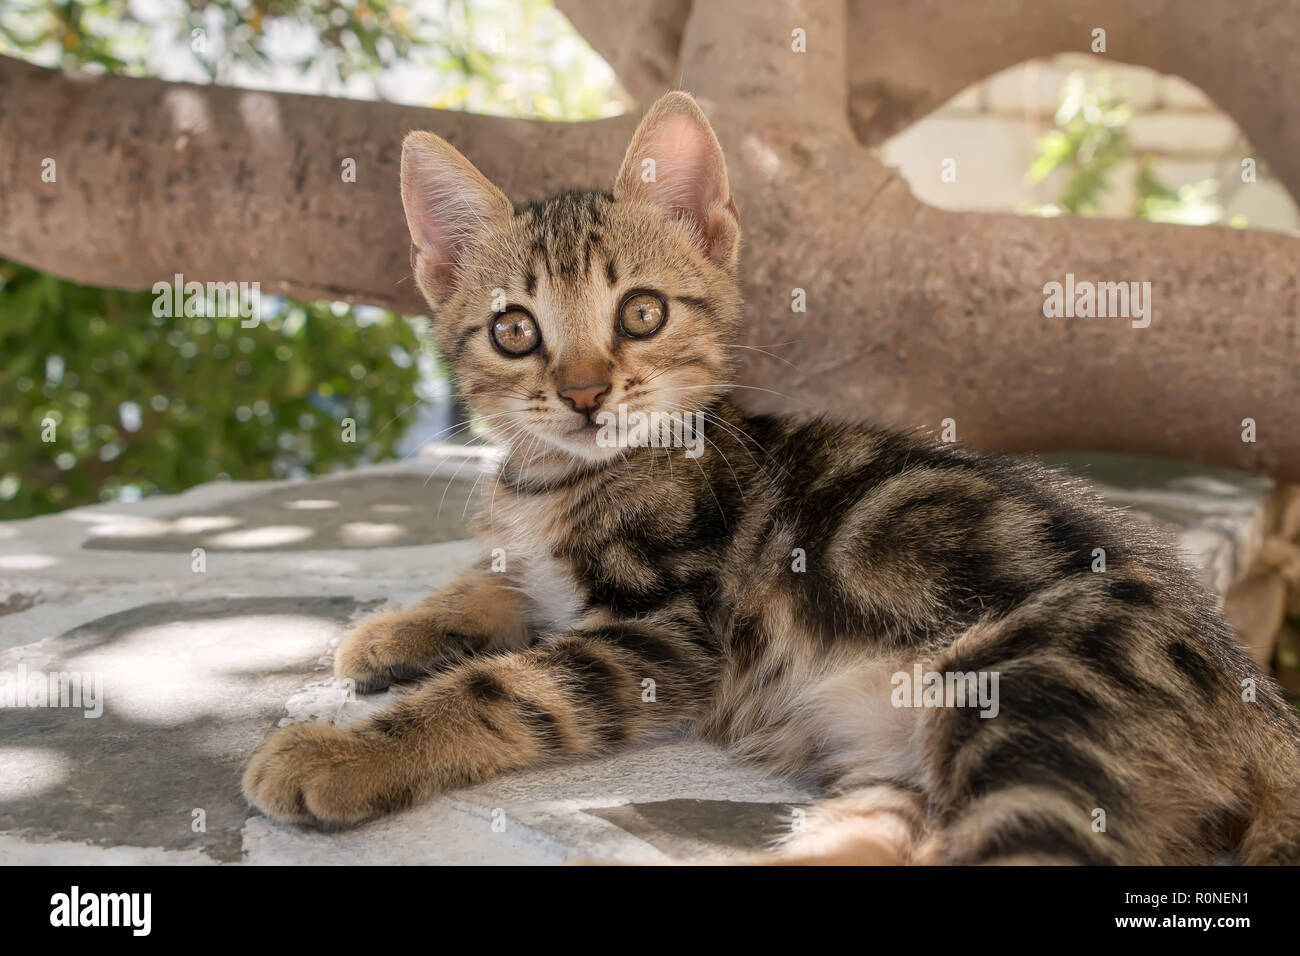 Cute baby kitten, classic brown tabby, resting on a wall, looking with wide eyes, Aegean  island, Greece, Europe - Stock Image